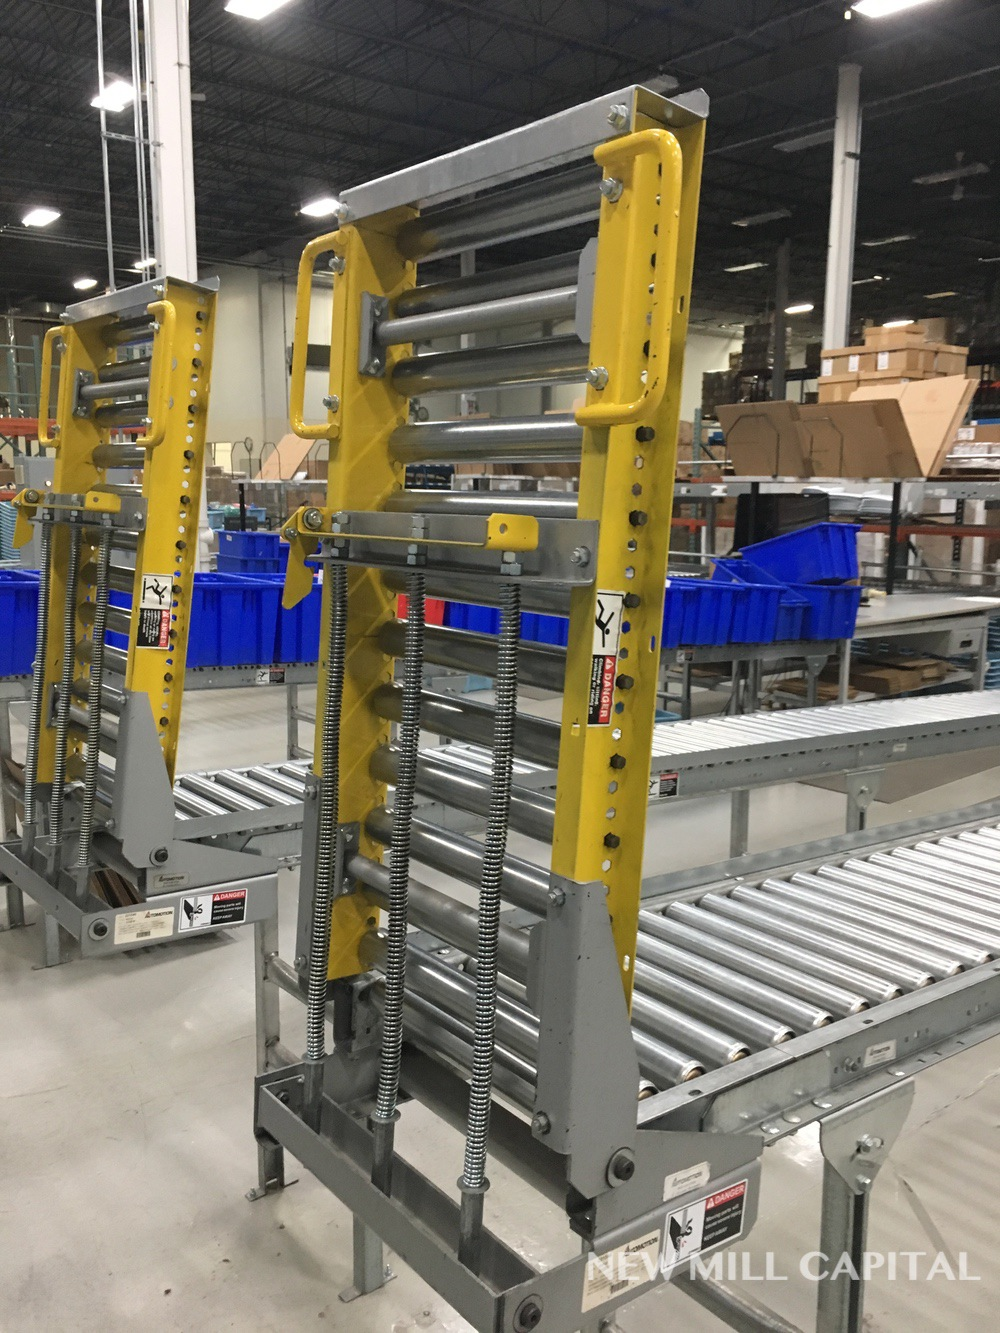 Lot 55 - Spring Assisted Roller Conveyor & Gate, Approx 20ft OA Length, 15in Wide Rol | Rig Fee: $150